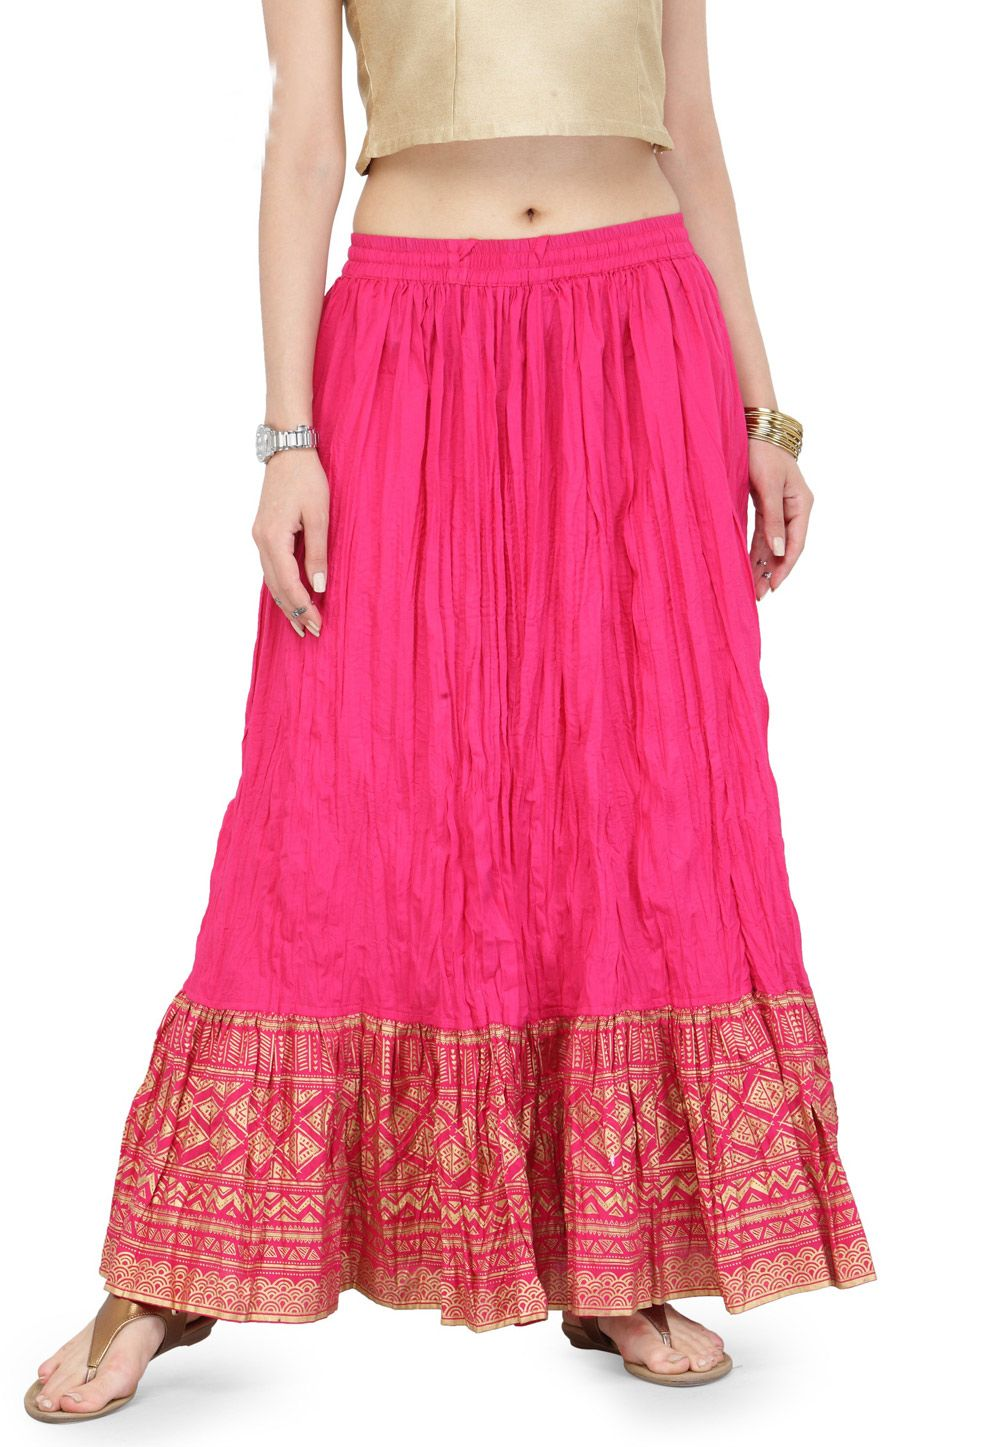 519f3e146 Buy Magenta Cotton Readymade Skirt 161245 online at lowest price from vast  collection at Indianclothstore.com.